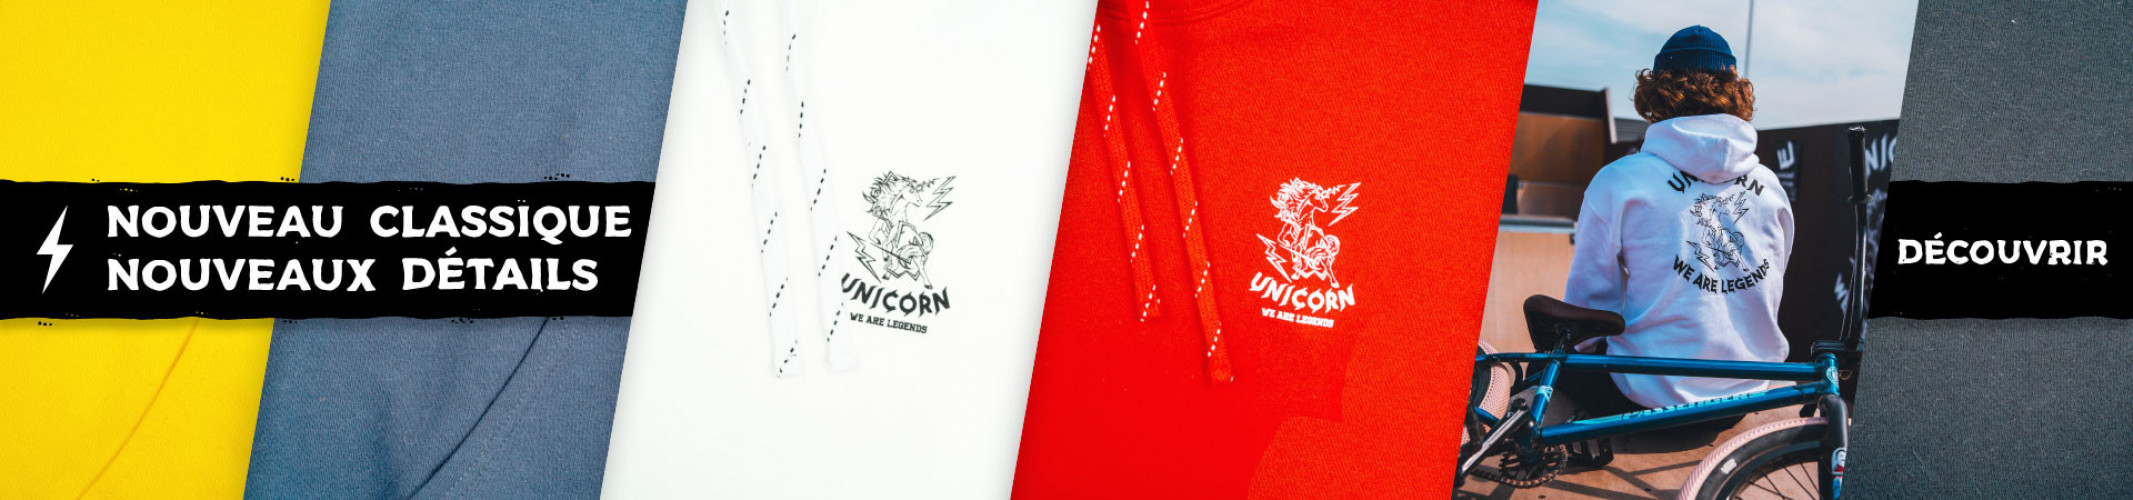 Classic One - T-shirts, sweats et accessoires - Unicorn we are Legends